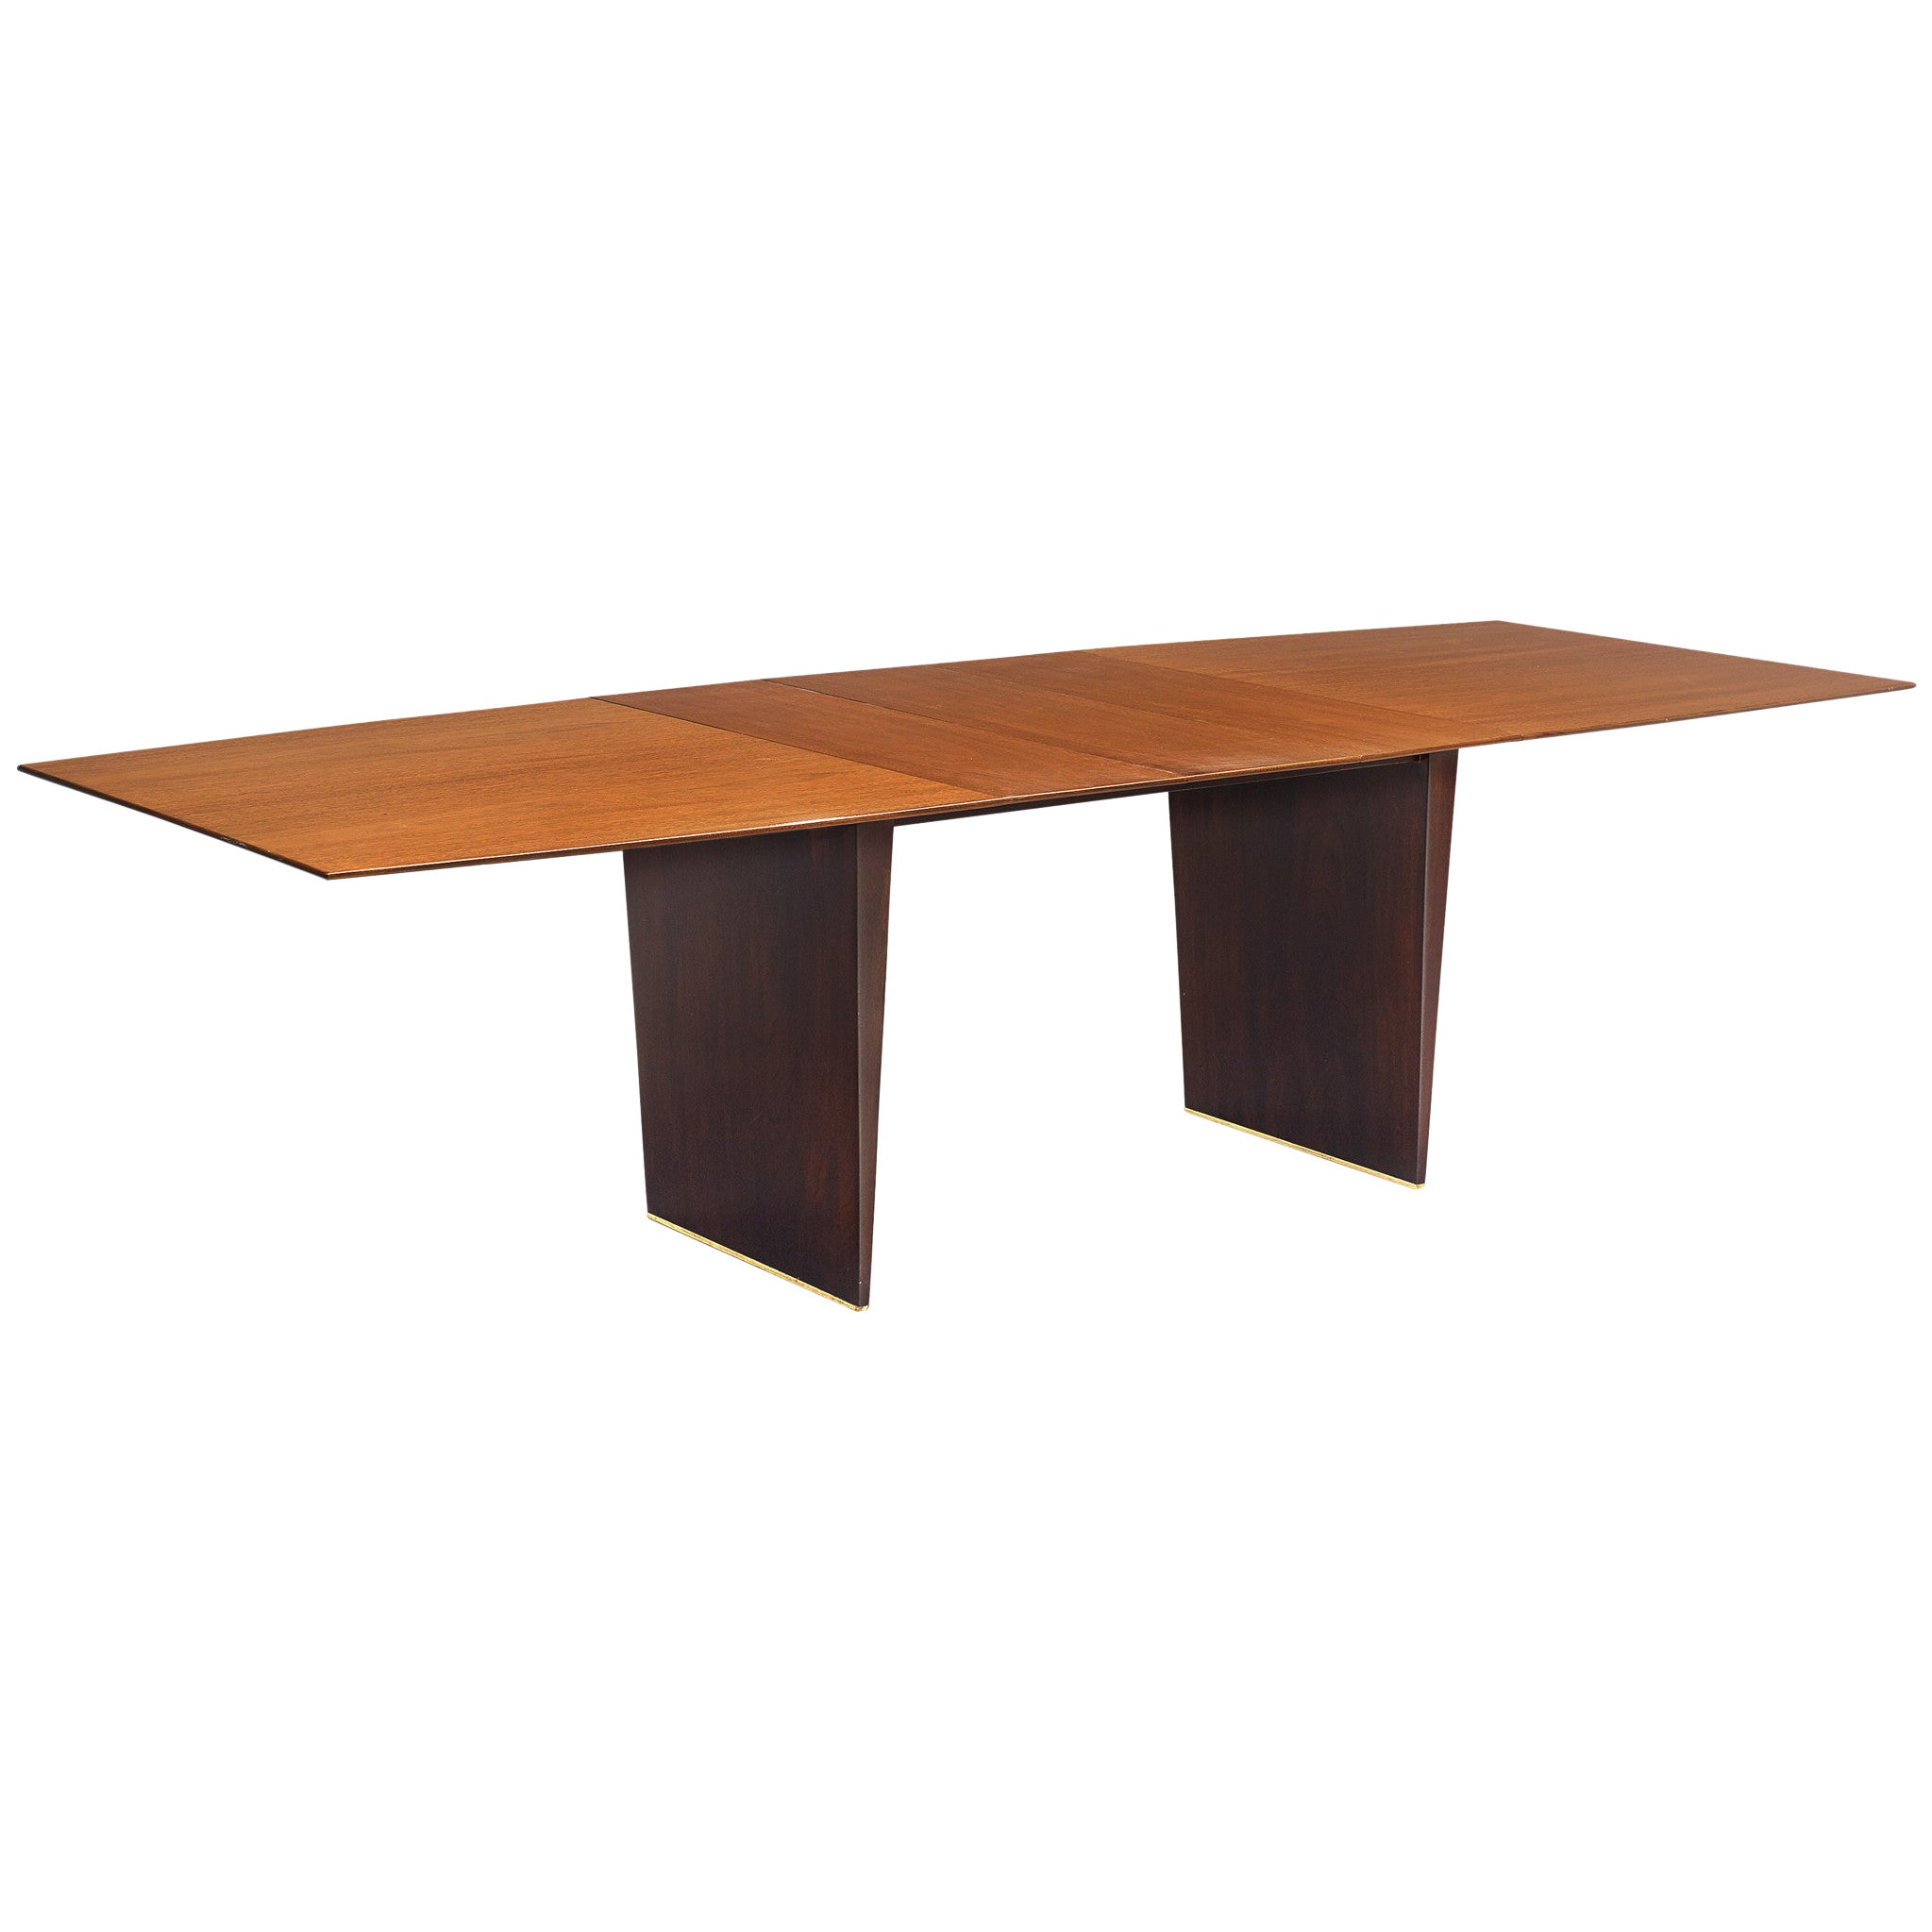 Edward Wormley Extendable Dining Table in Tawi